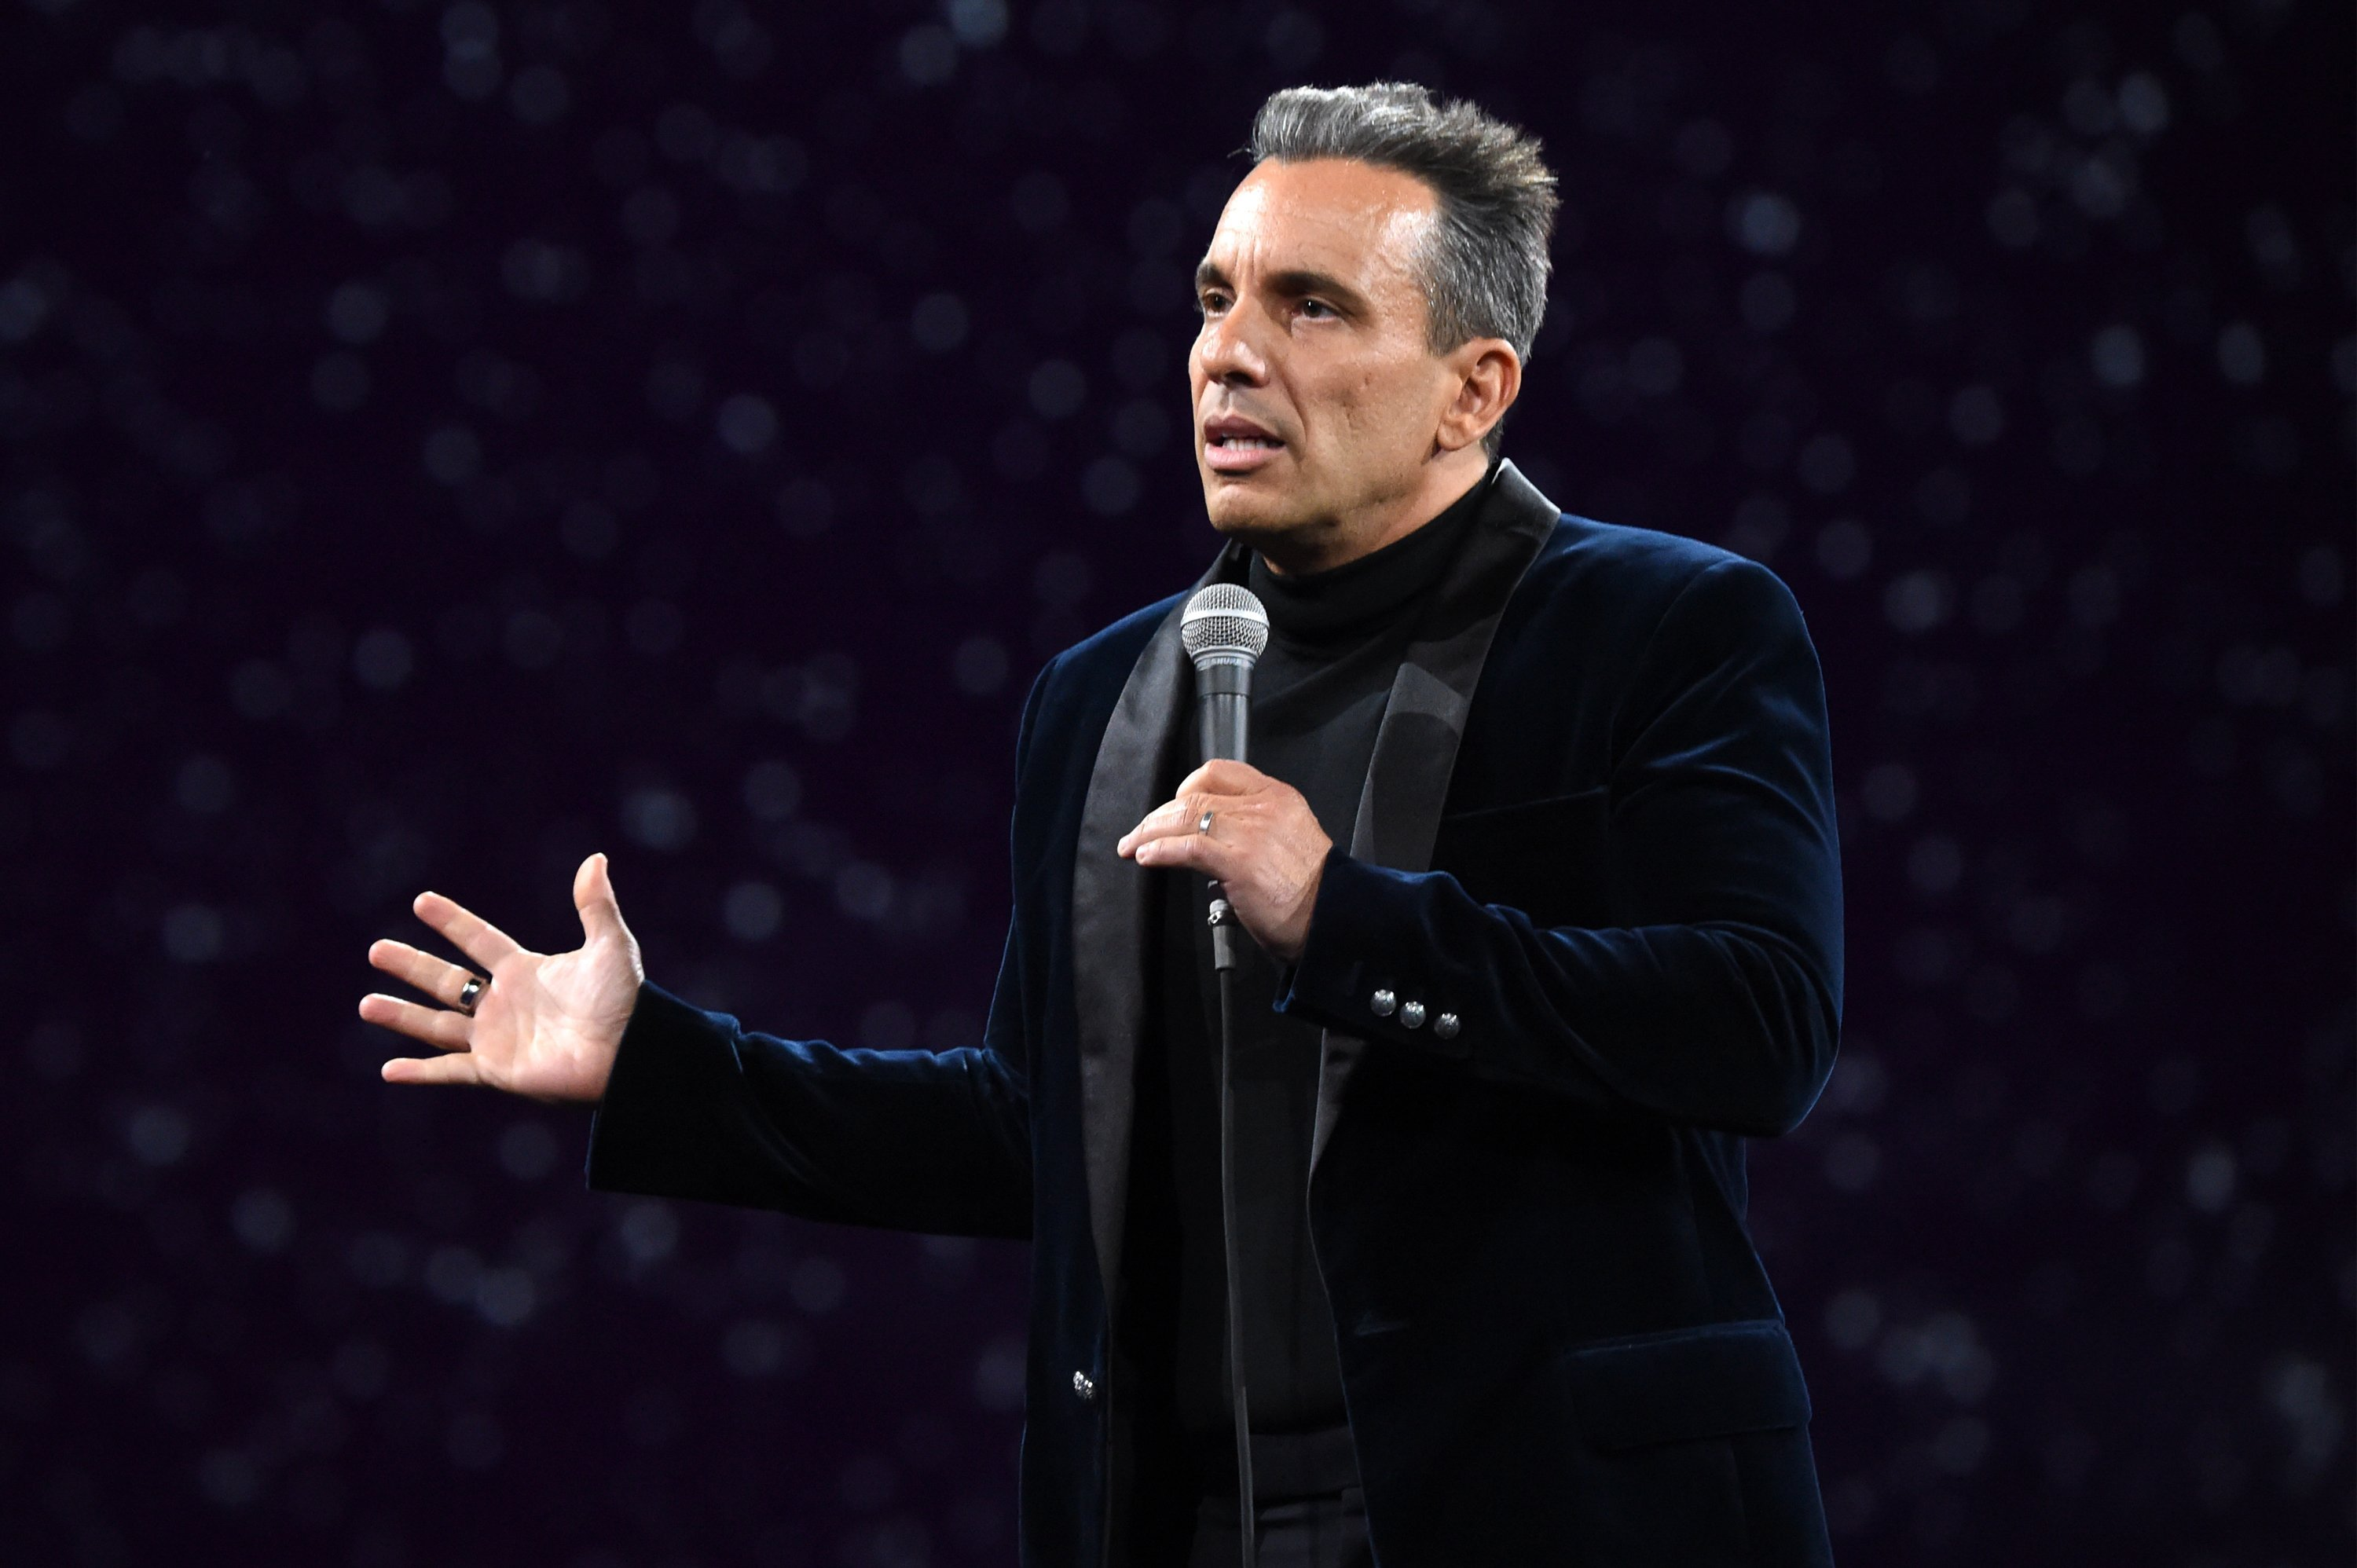 Sebastian Maniscalco will host the 2019 MTV VMAs